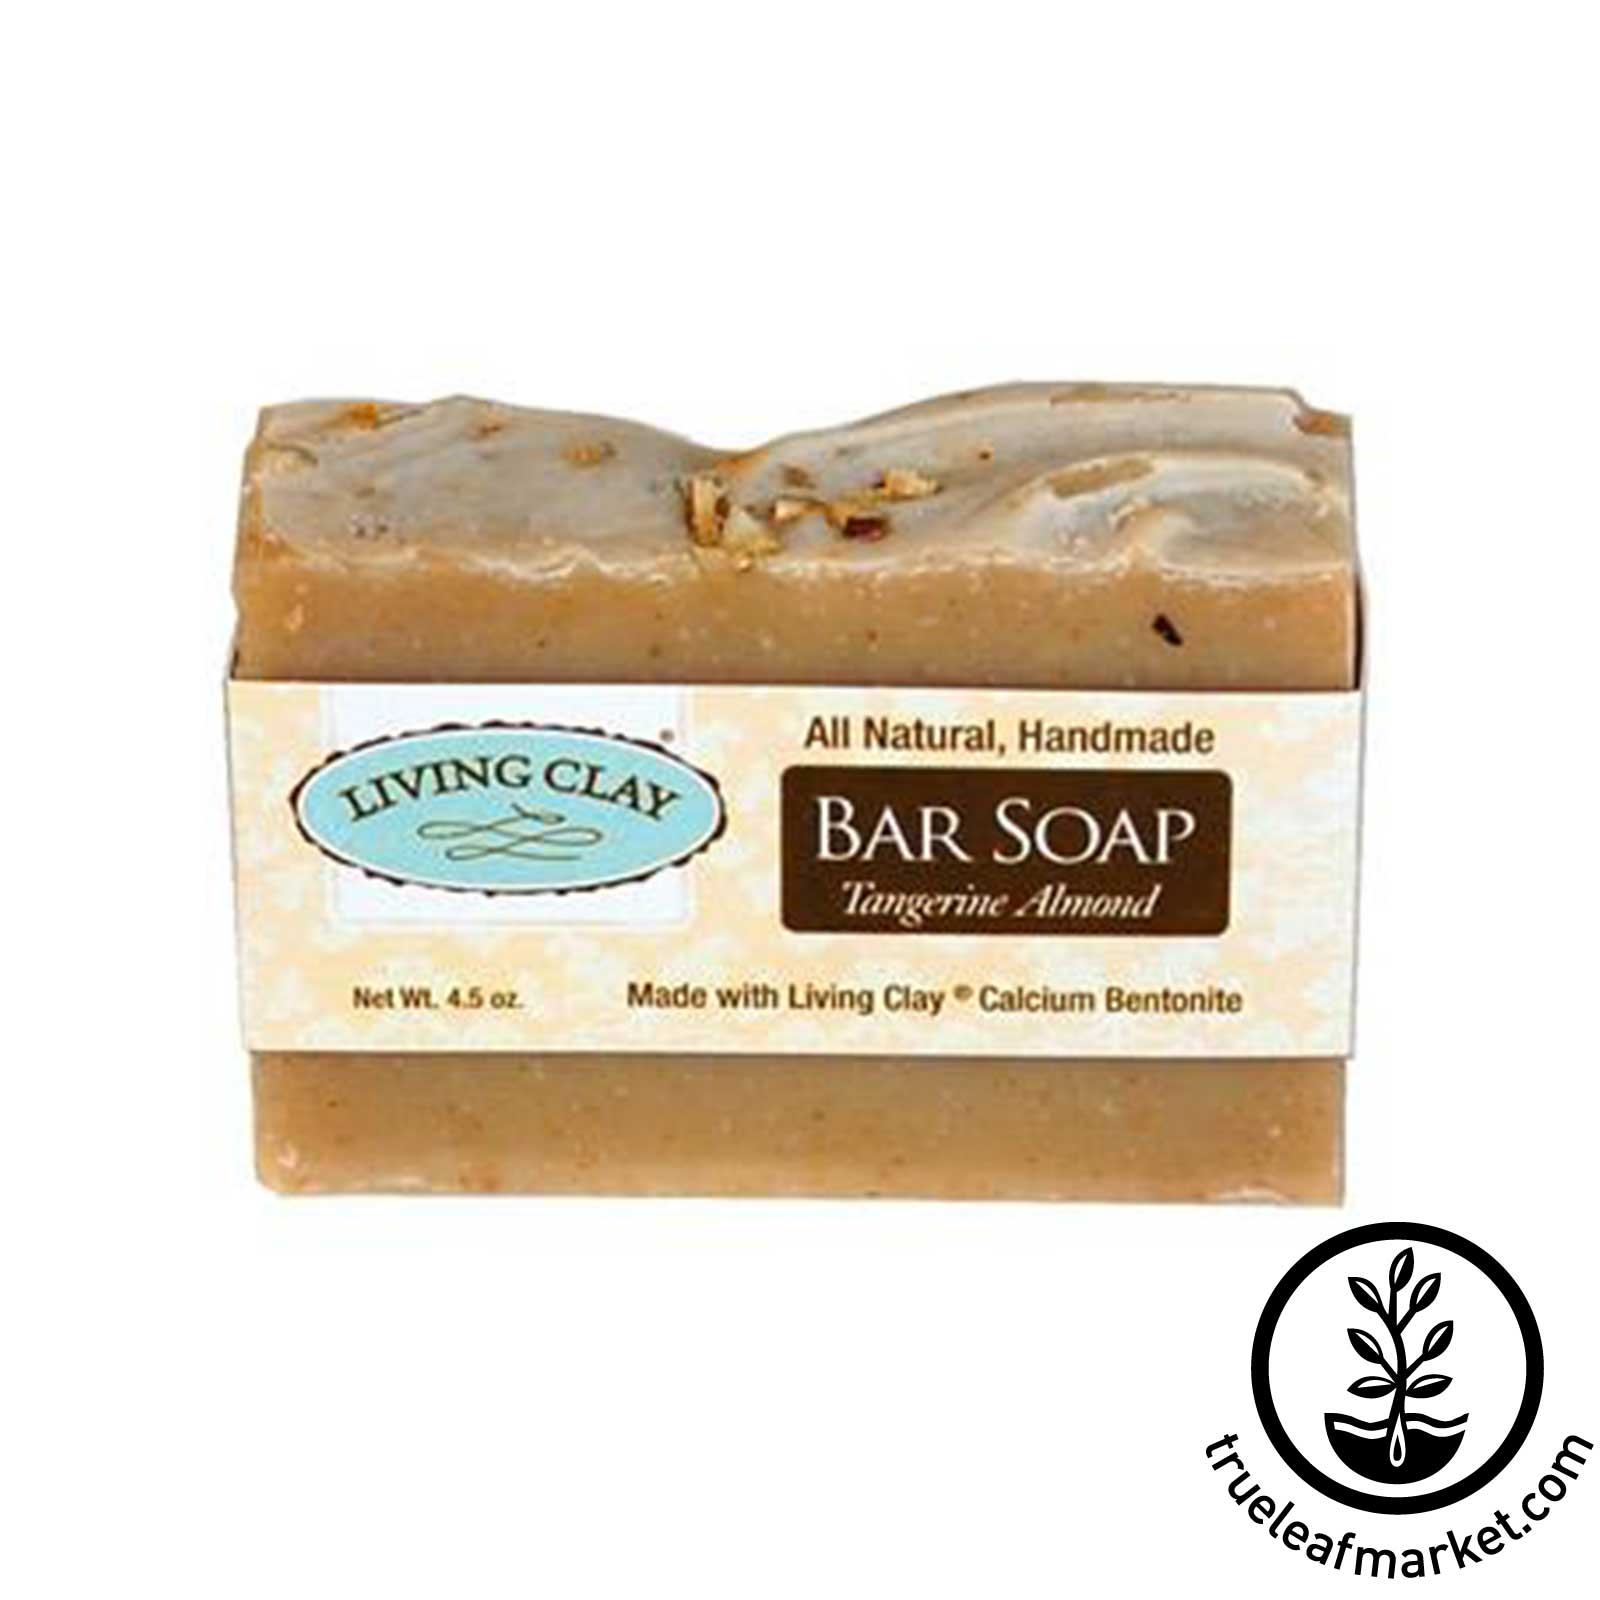 Tangerine Almond & Bentonite Clay Soap Bar